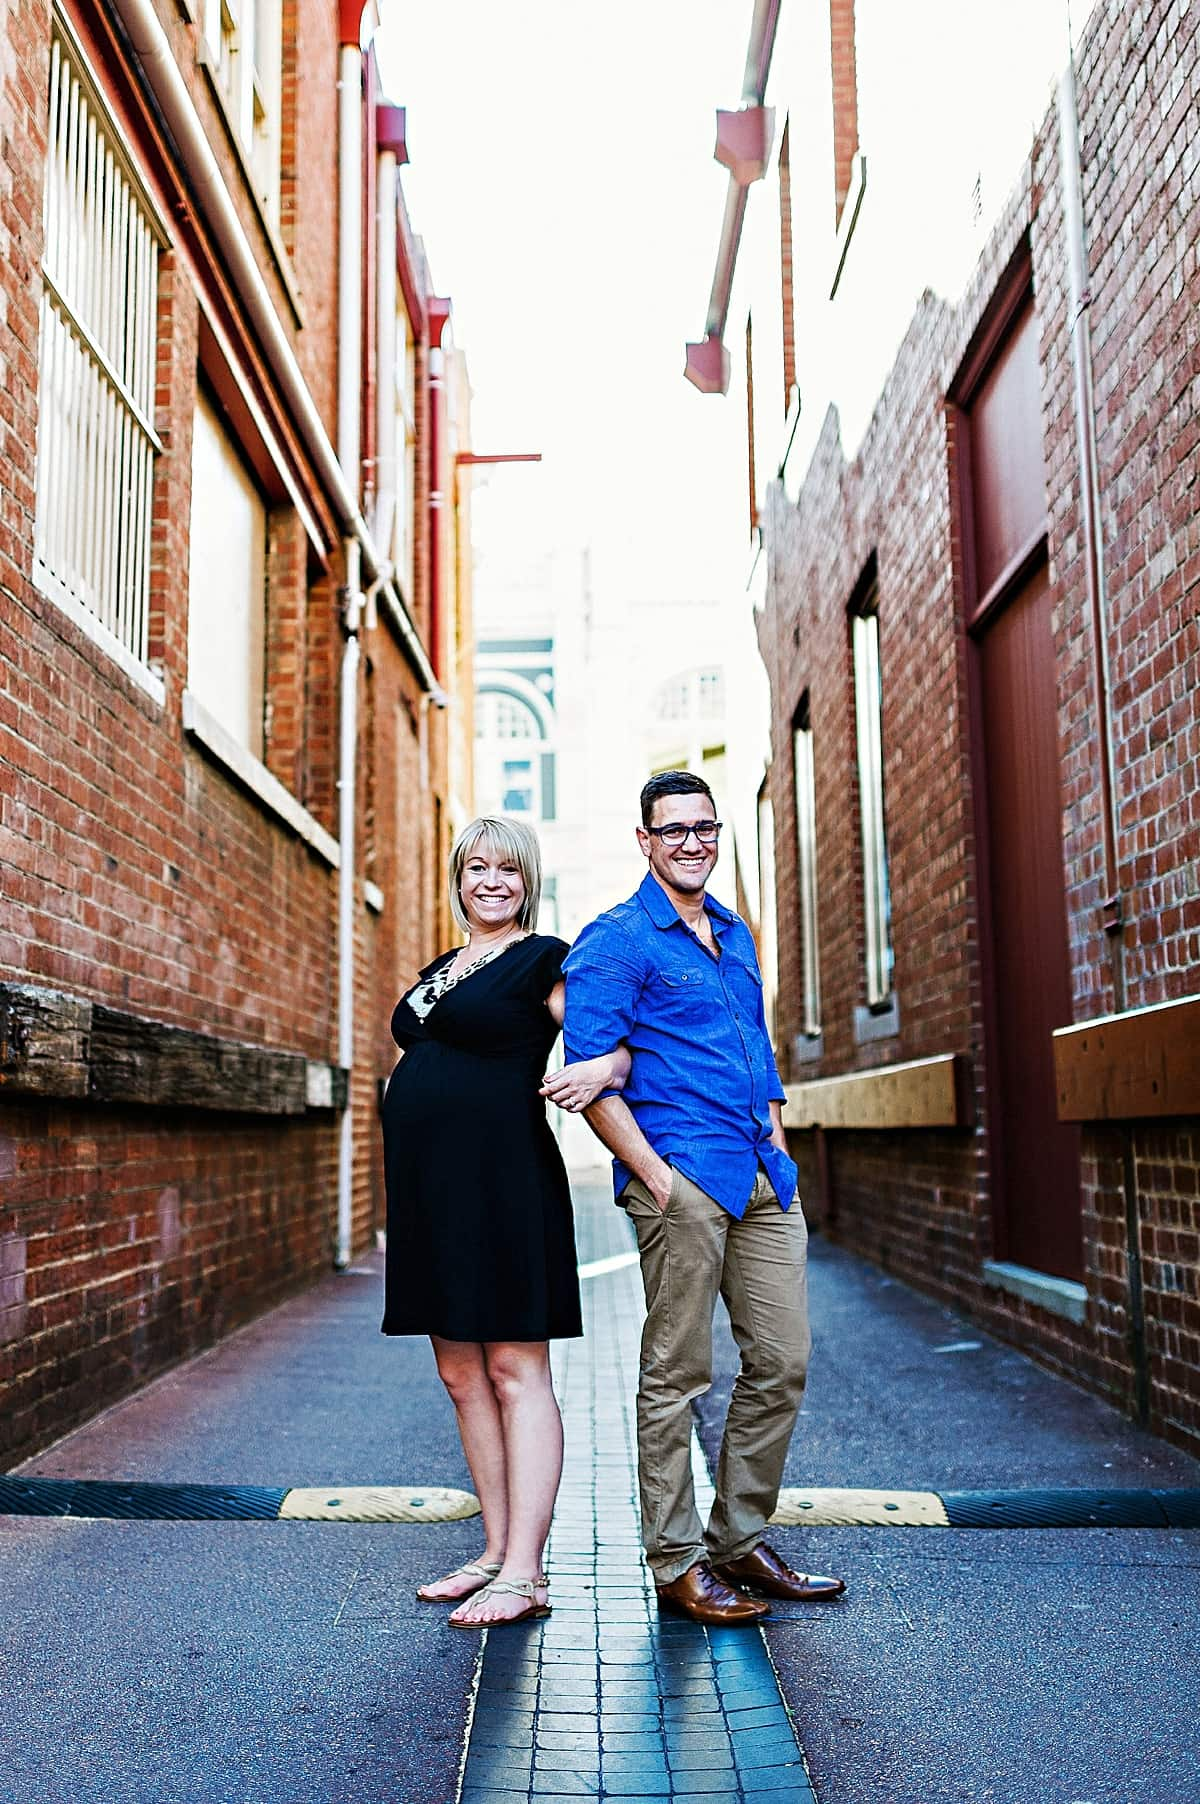 Pregnancy Shoot in Perth, Australia ~ Diane & Claudio